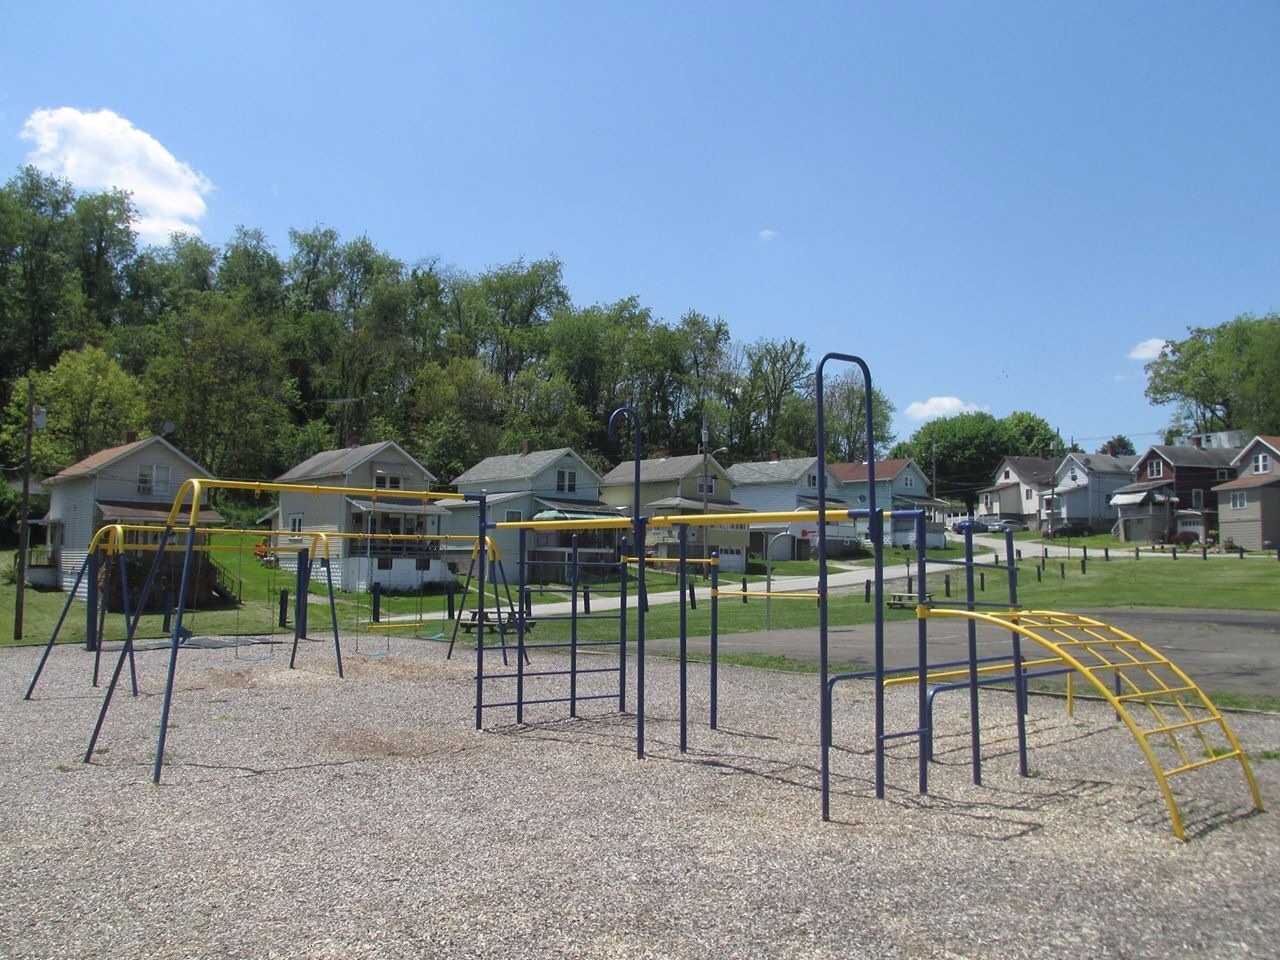 small park in Richeyville Pennsylvania of Washington County- The park was renovated by Jacob Ford of Richeyville for his Eagle Scout Project in the summer